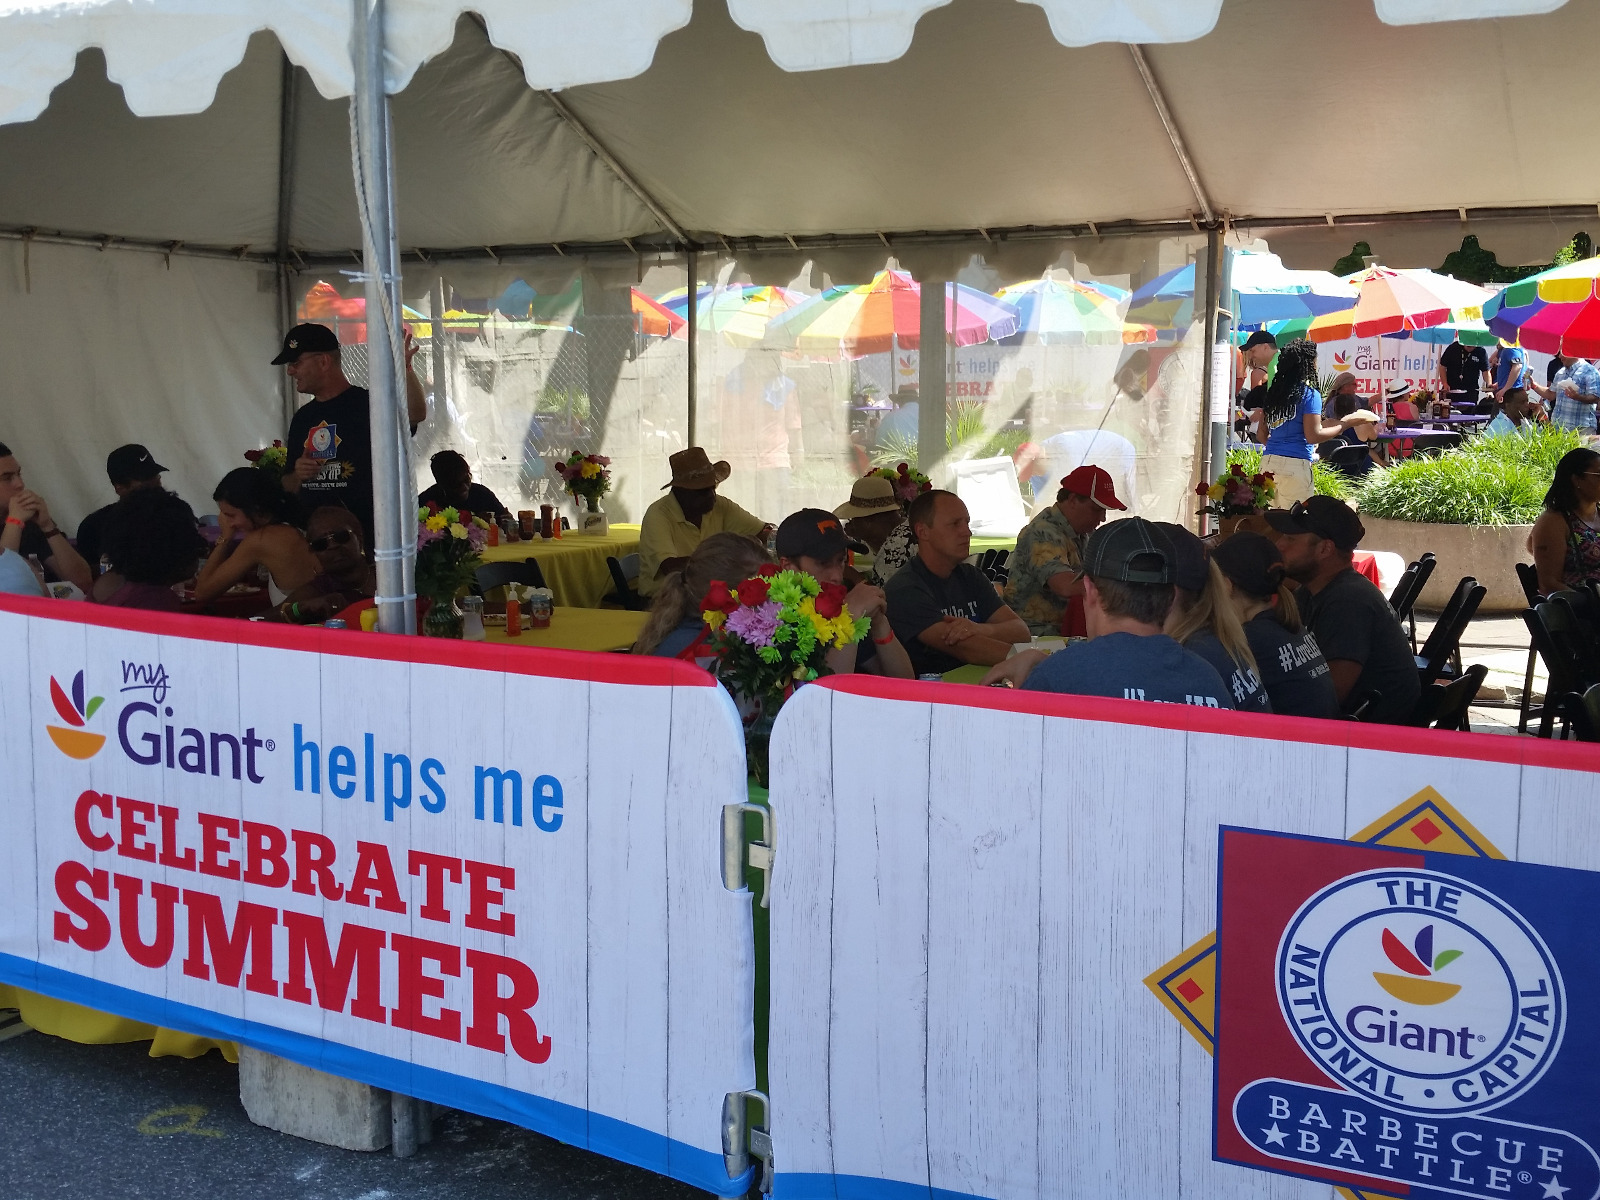 Custom Barricade Covers Over SONCO Barricades at Giant Food's National Capital BBQ Event